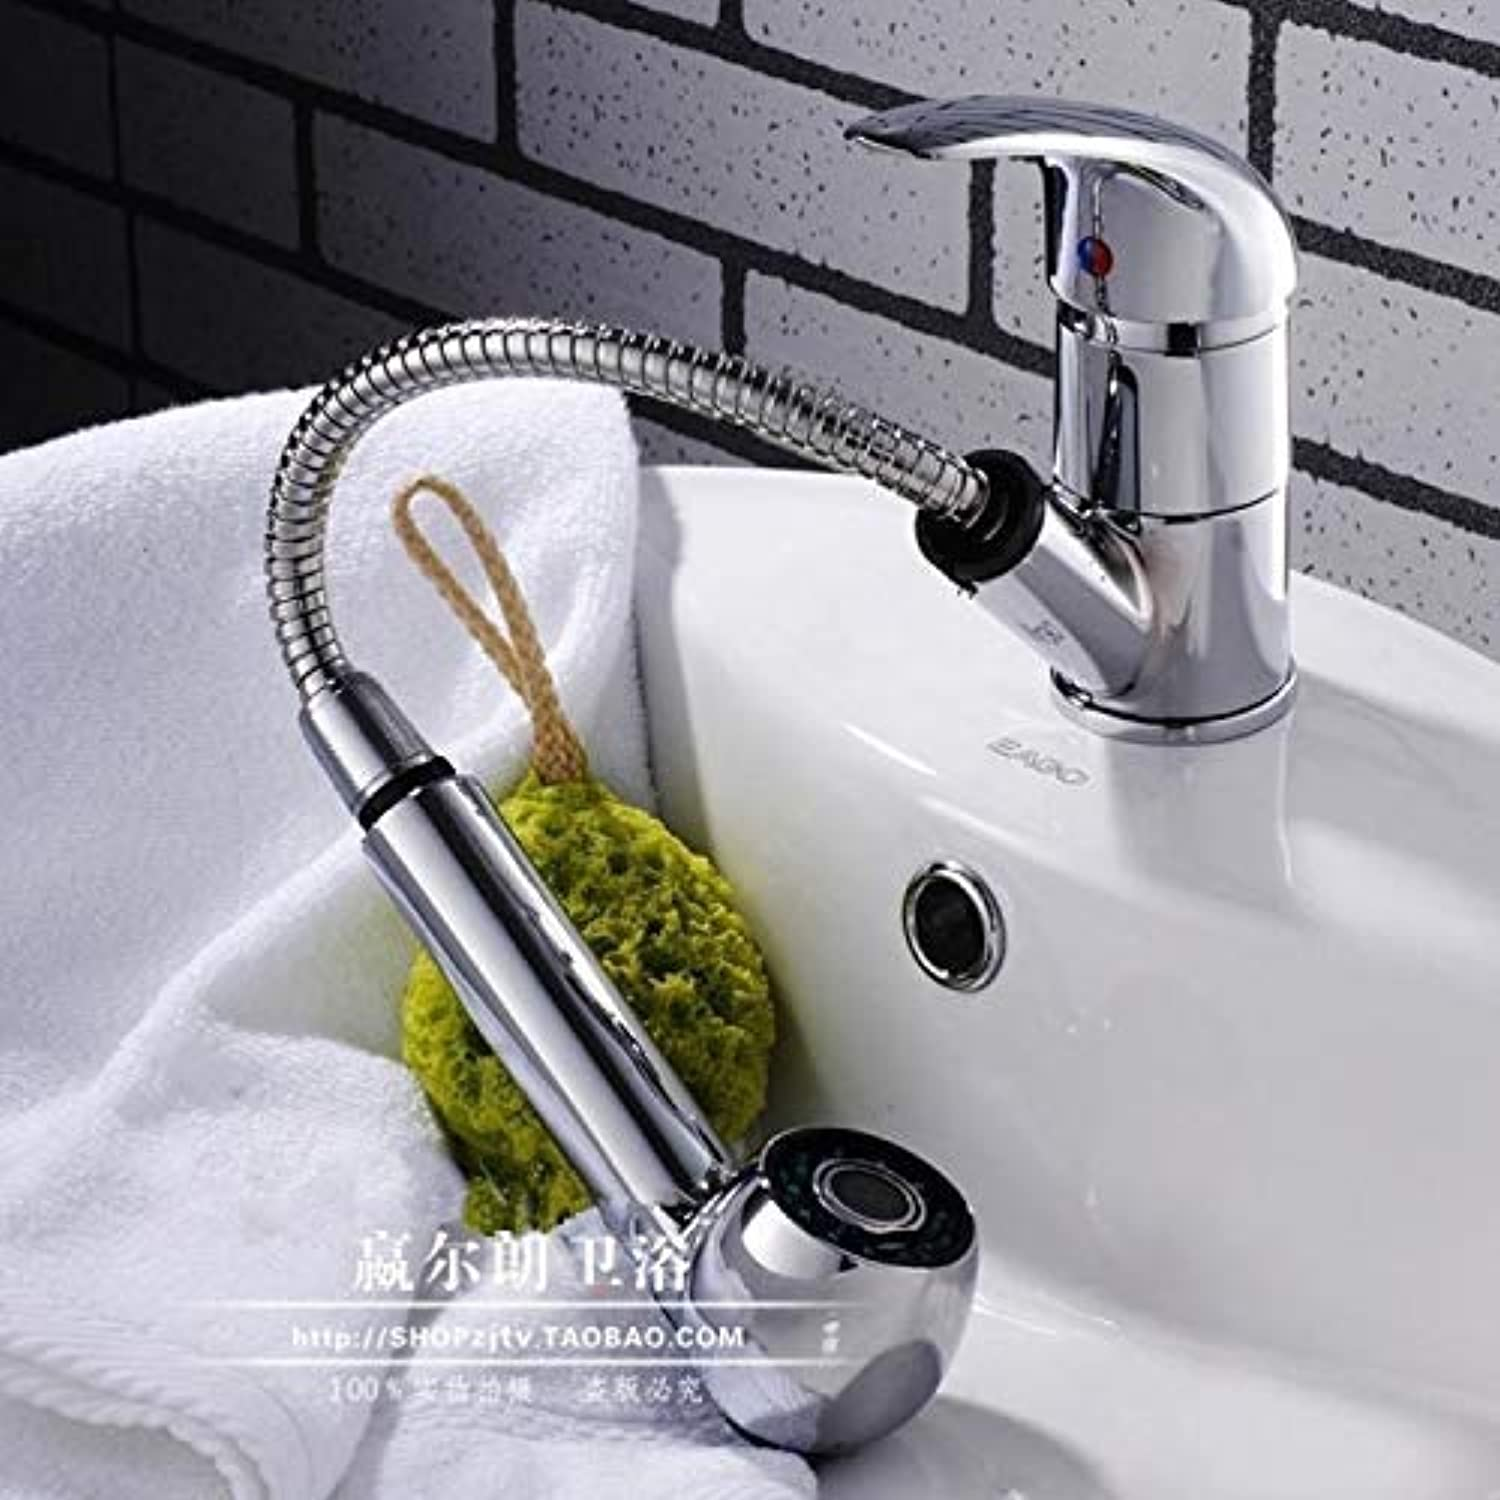 Oudan Cold Drawing Telescopically Pulling The Hose All-Copper Faucet Washbasin Basin Taps Continental (color   -, Size   -)